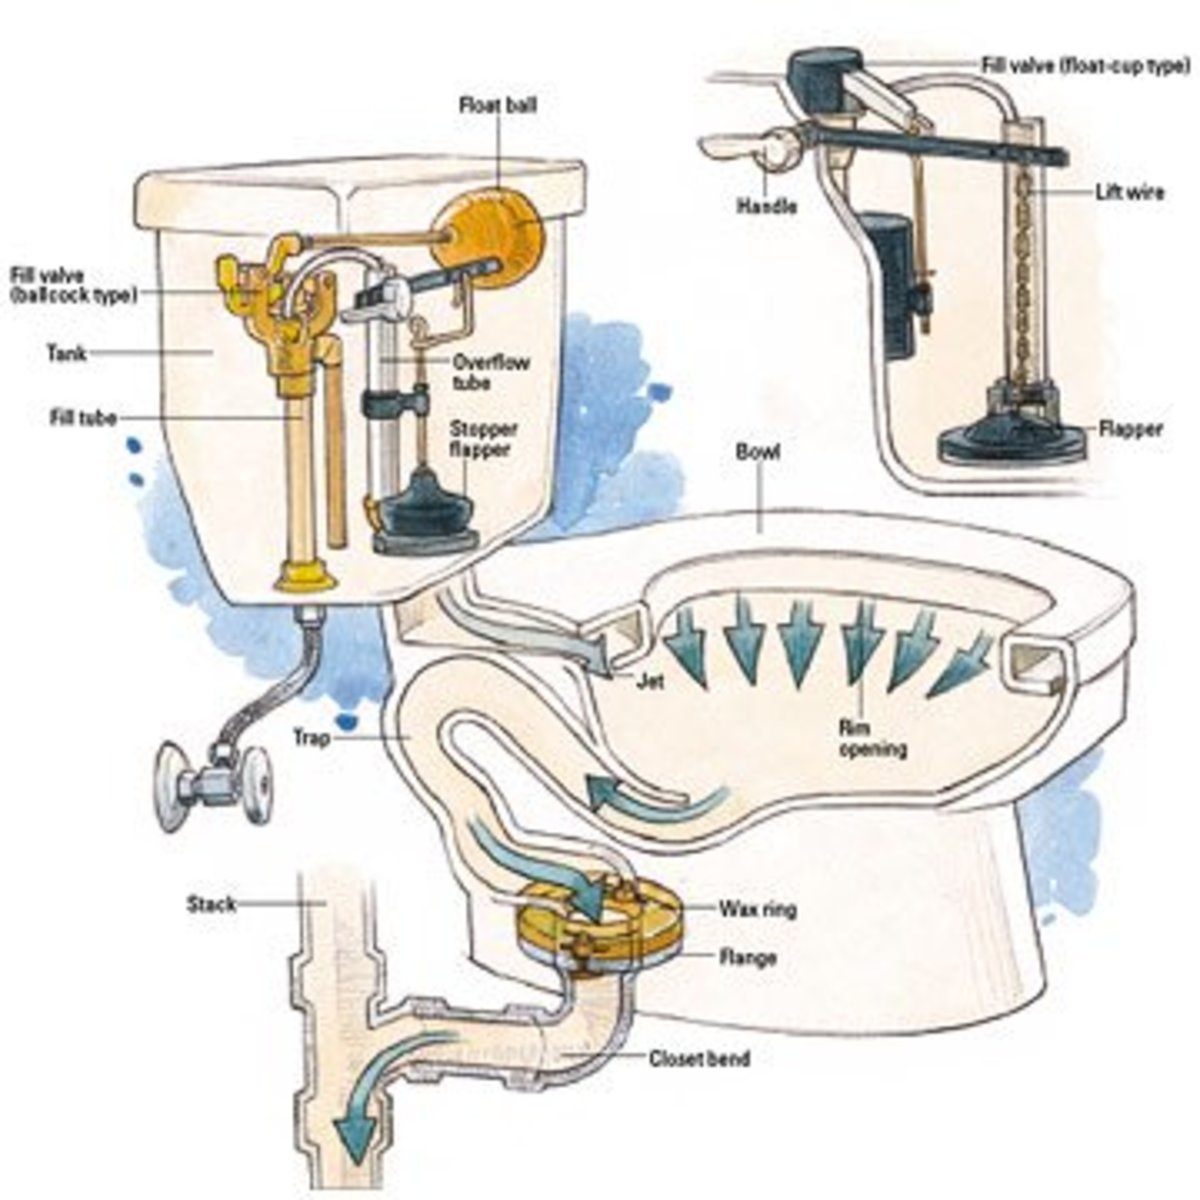 Common Toilet Troubles & How to Address Them